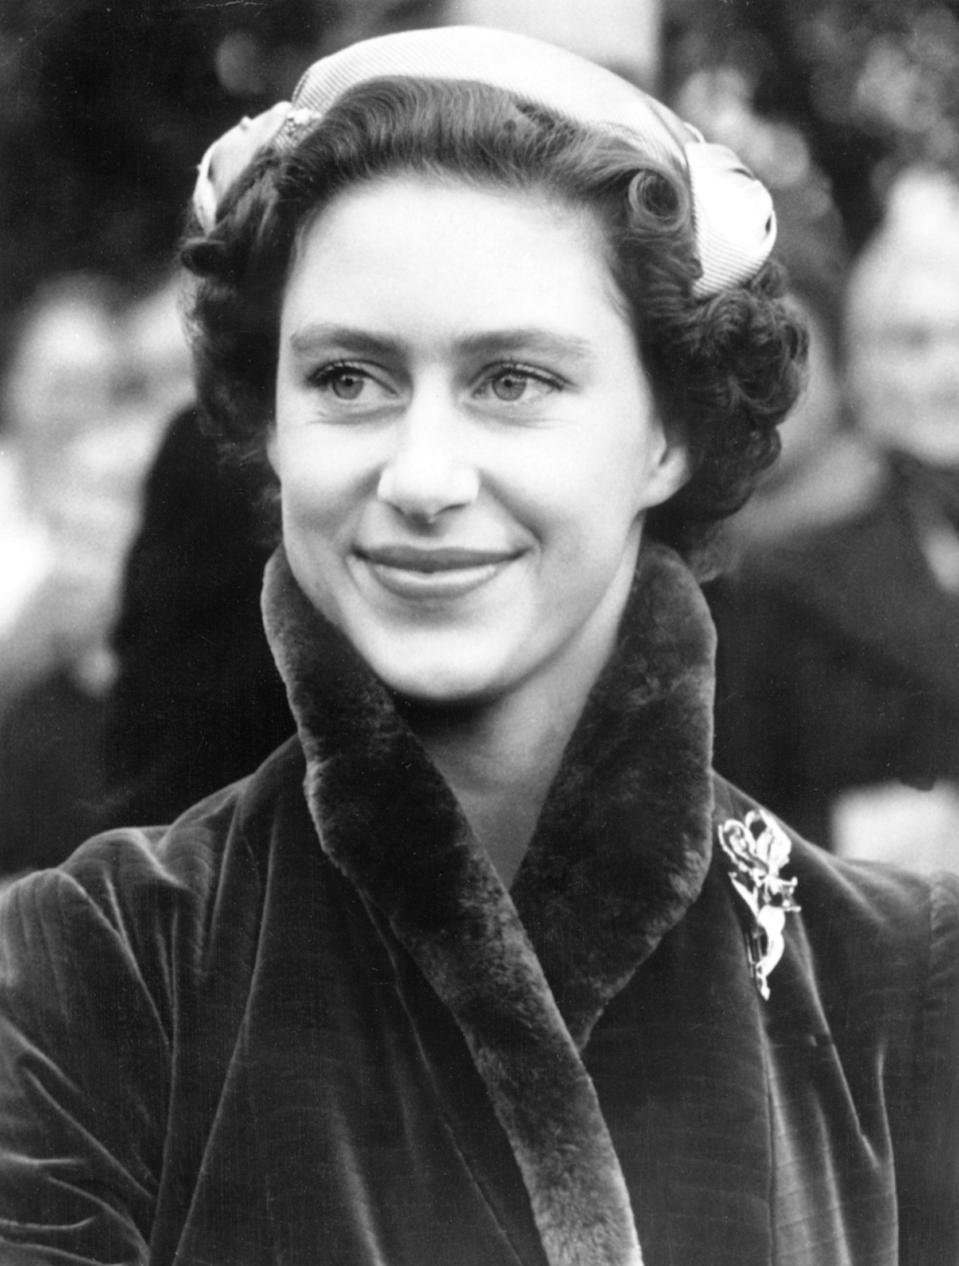 UNITED KINGDOM - OCTOBER 31:  Princess MARGARET attending her friend's marriage. Miss Elizabeth CAREW POLE married in North Mimms Park's chapel near Hatfield.  (Photo by Keystone-France/Gamma-Keystone via Getty Images)